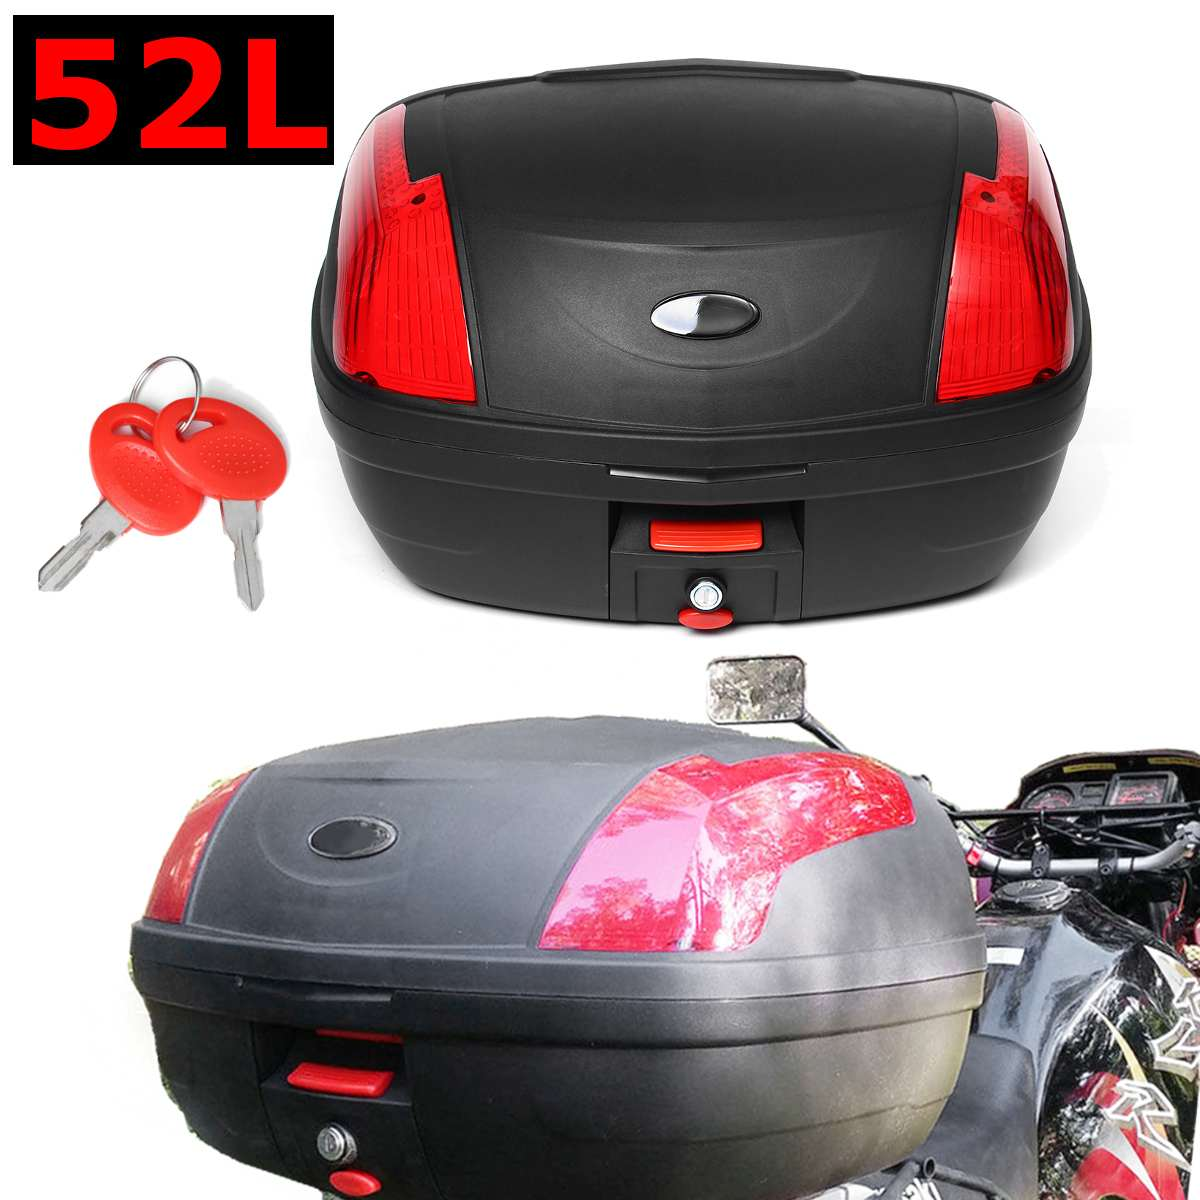 52L Secure Latch Black Motorcycle Trunk With Lock Scooter Top Box Durable Rear Storage Luggage Topbox Case 55x42x32cm New